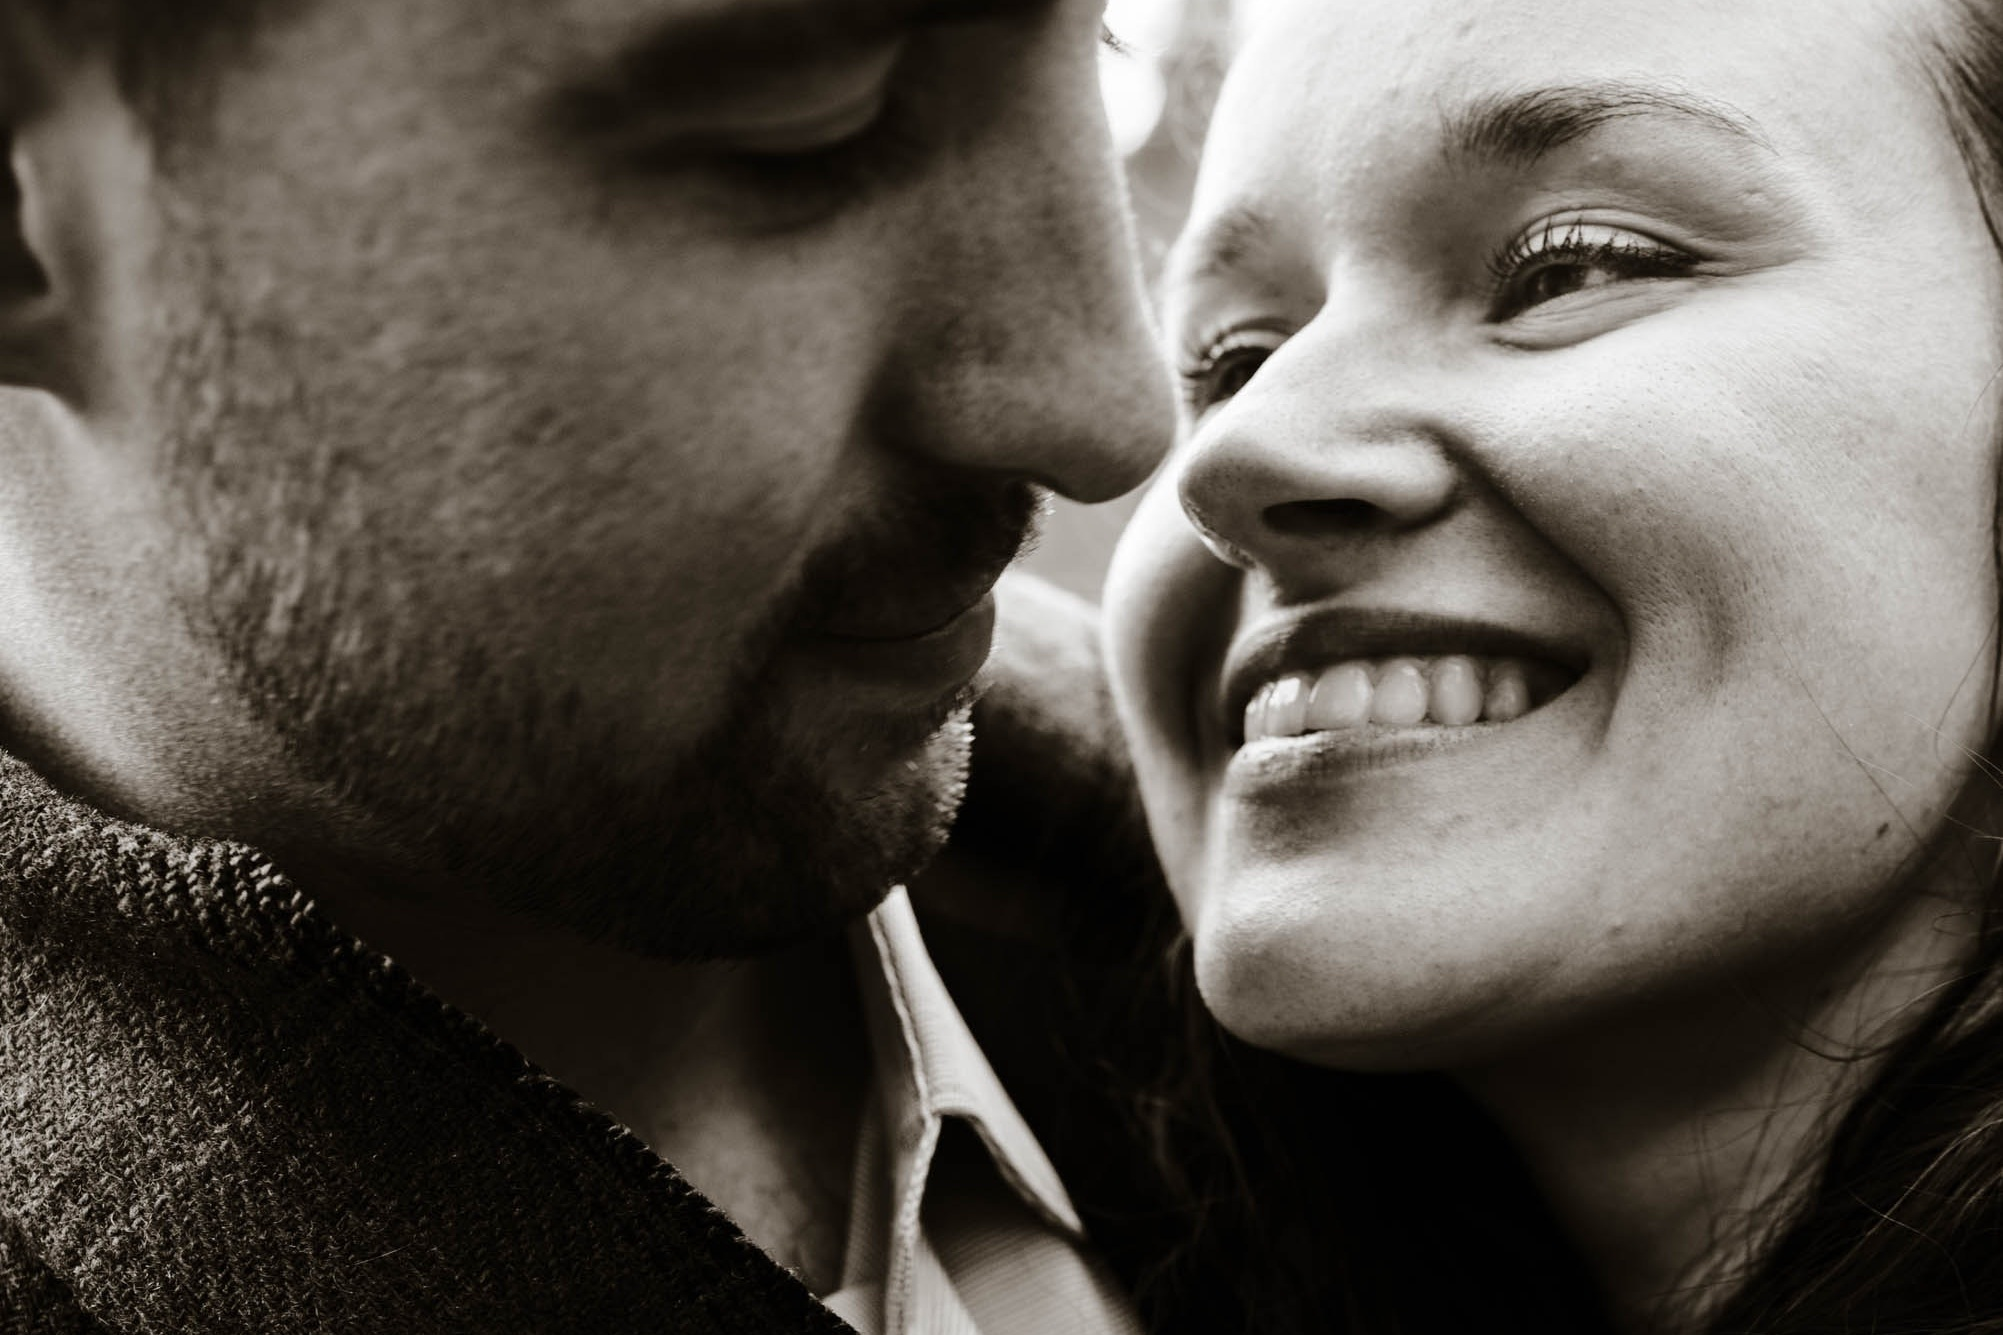 How To Communicate Better with Your Spouse - 3 Incredibly